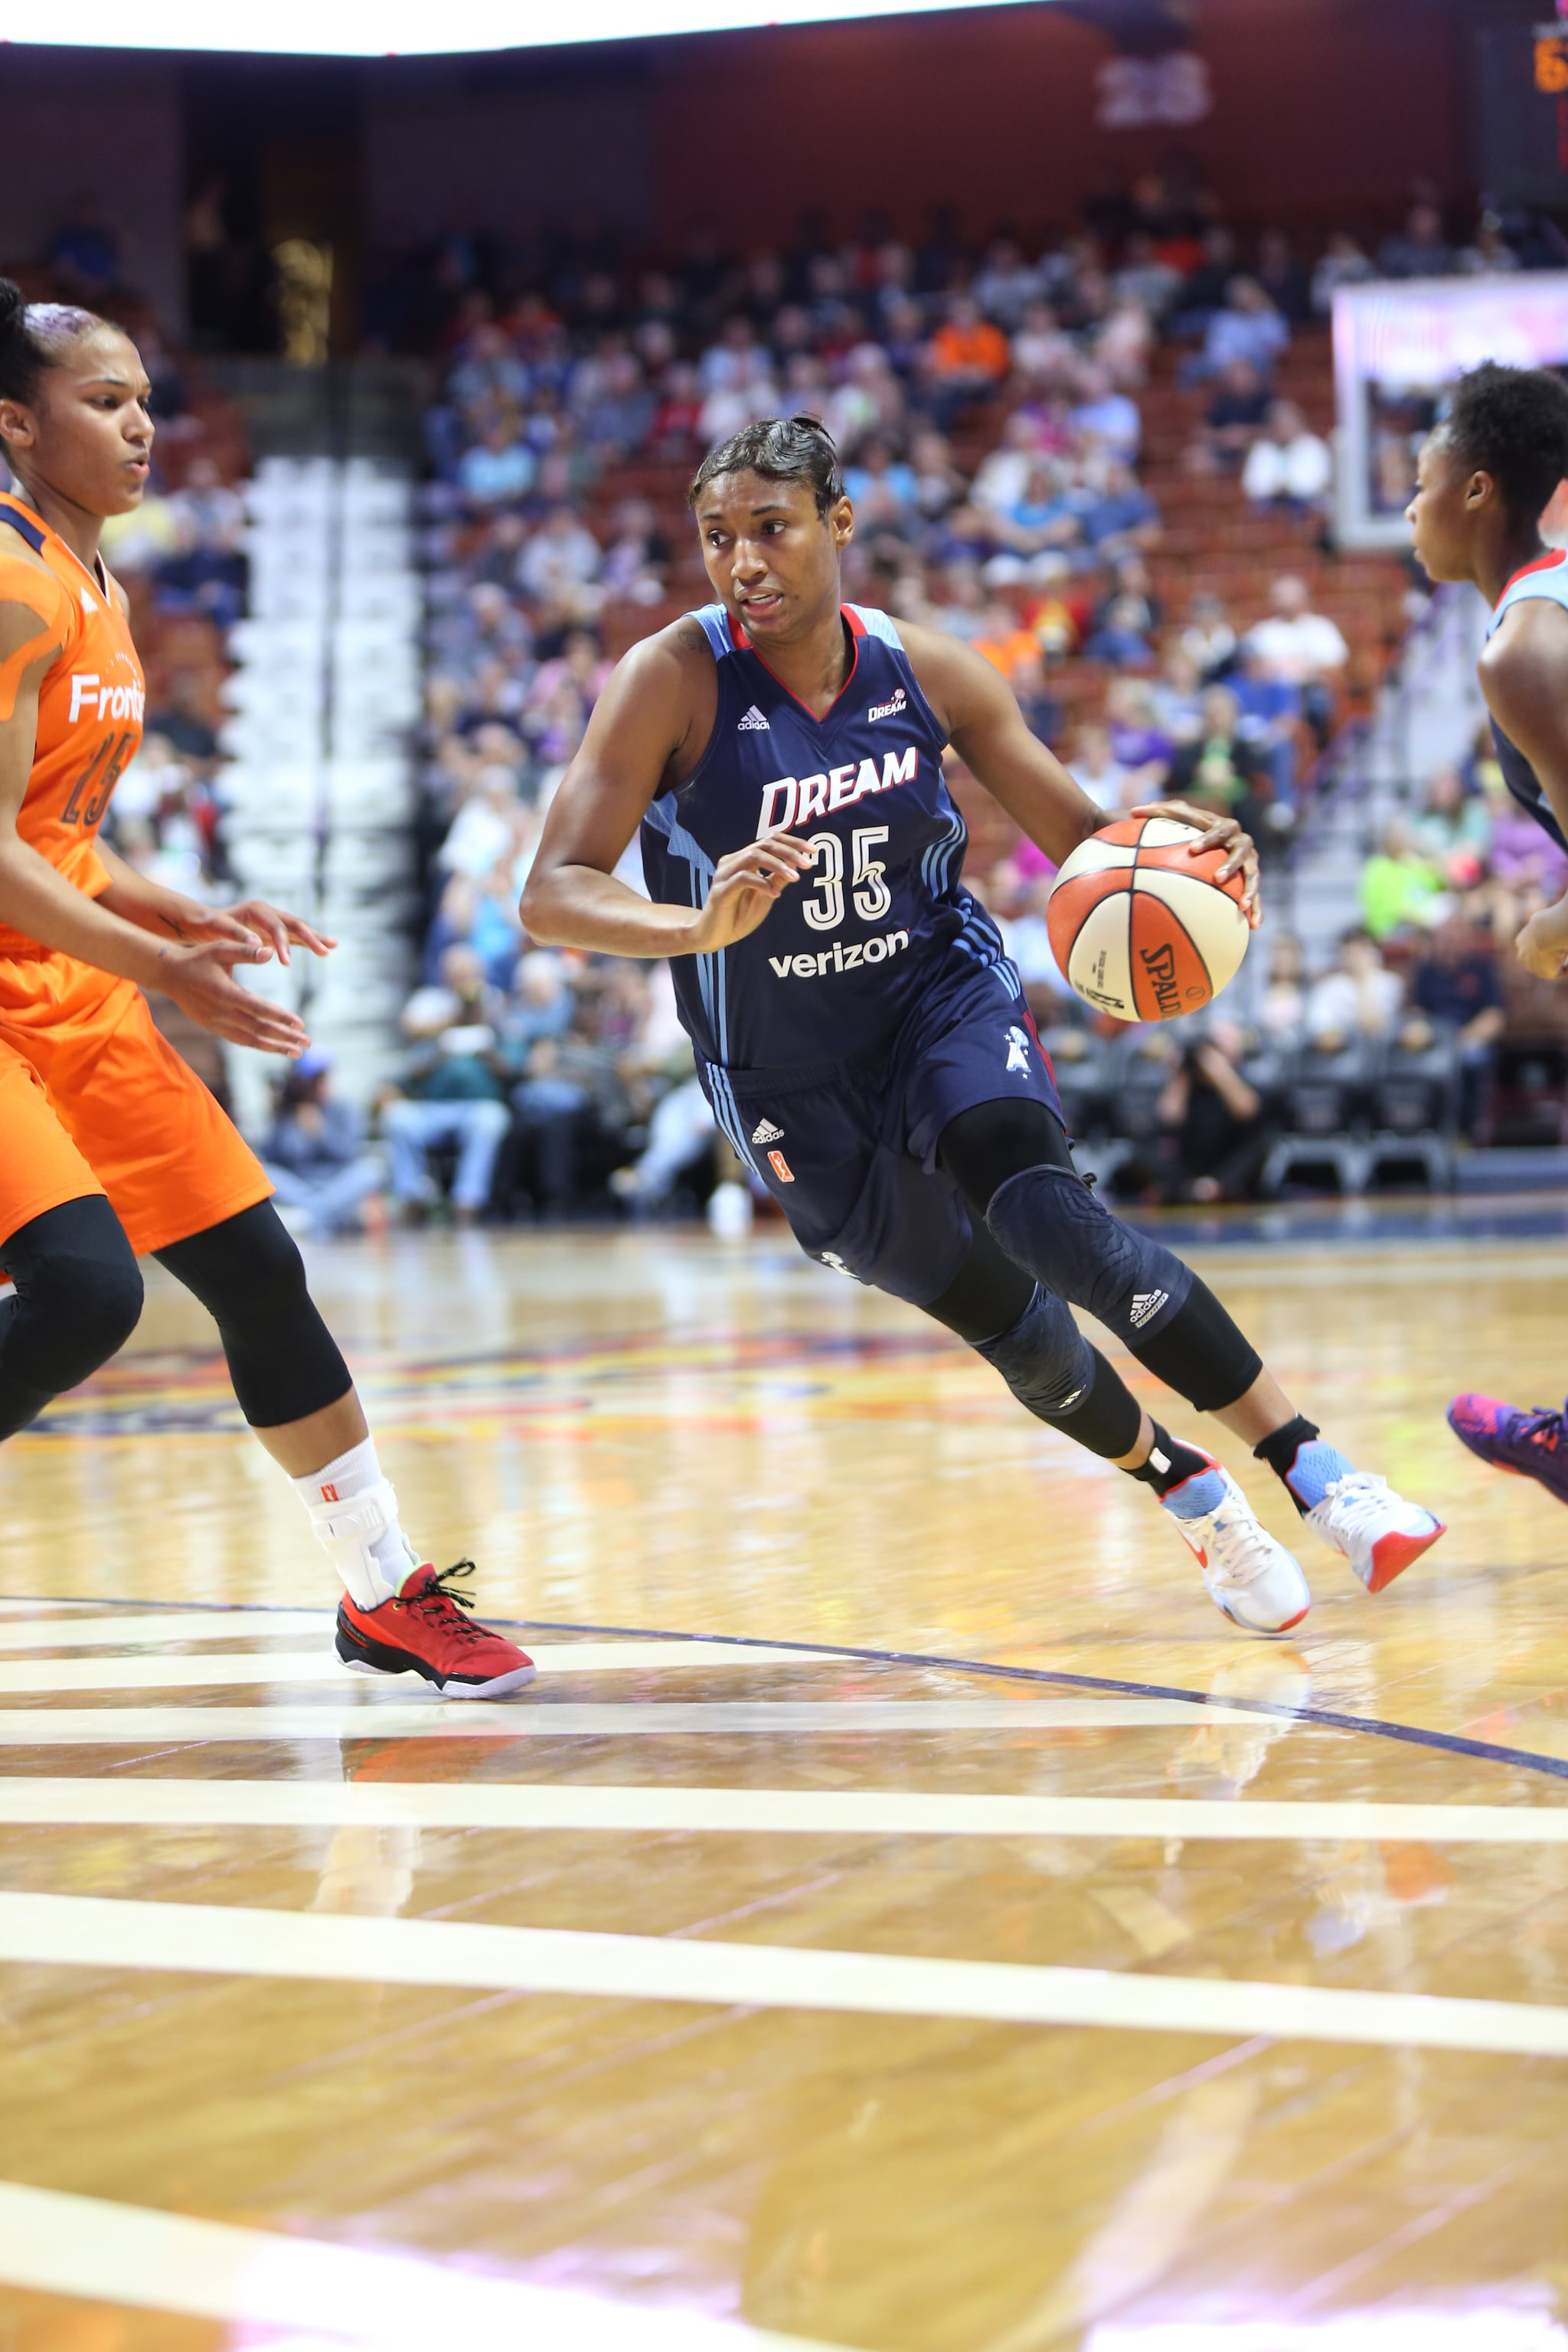 UNCASVILLE, CT - JUNE 3: Angel McCoughtry #35 of the Atlanta Dream handles the ball against the Connecticut Sun on June 3, 2016 at Mohegan Sun Arena in Uncasville, CT. NOTE TO USER: User expressly acknowledges and agrees that, by downloading and or using this Photograph, user is consenting to the terms and conditions of the Getty Images License Agreement. Mandatory Copyright Notice: Copyright 2016 NBAE (Photo by Chris Marion/NBAE via Getty Images)